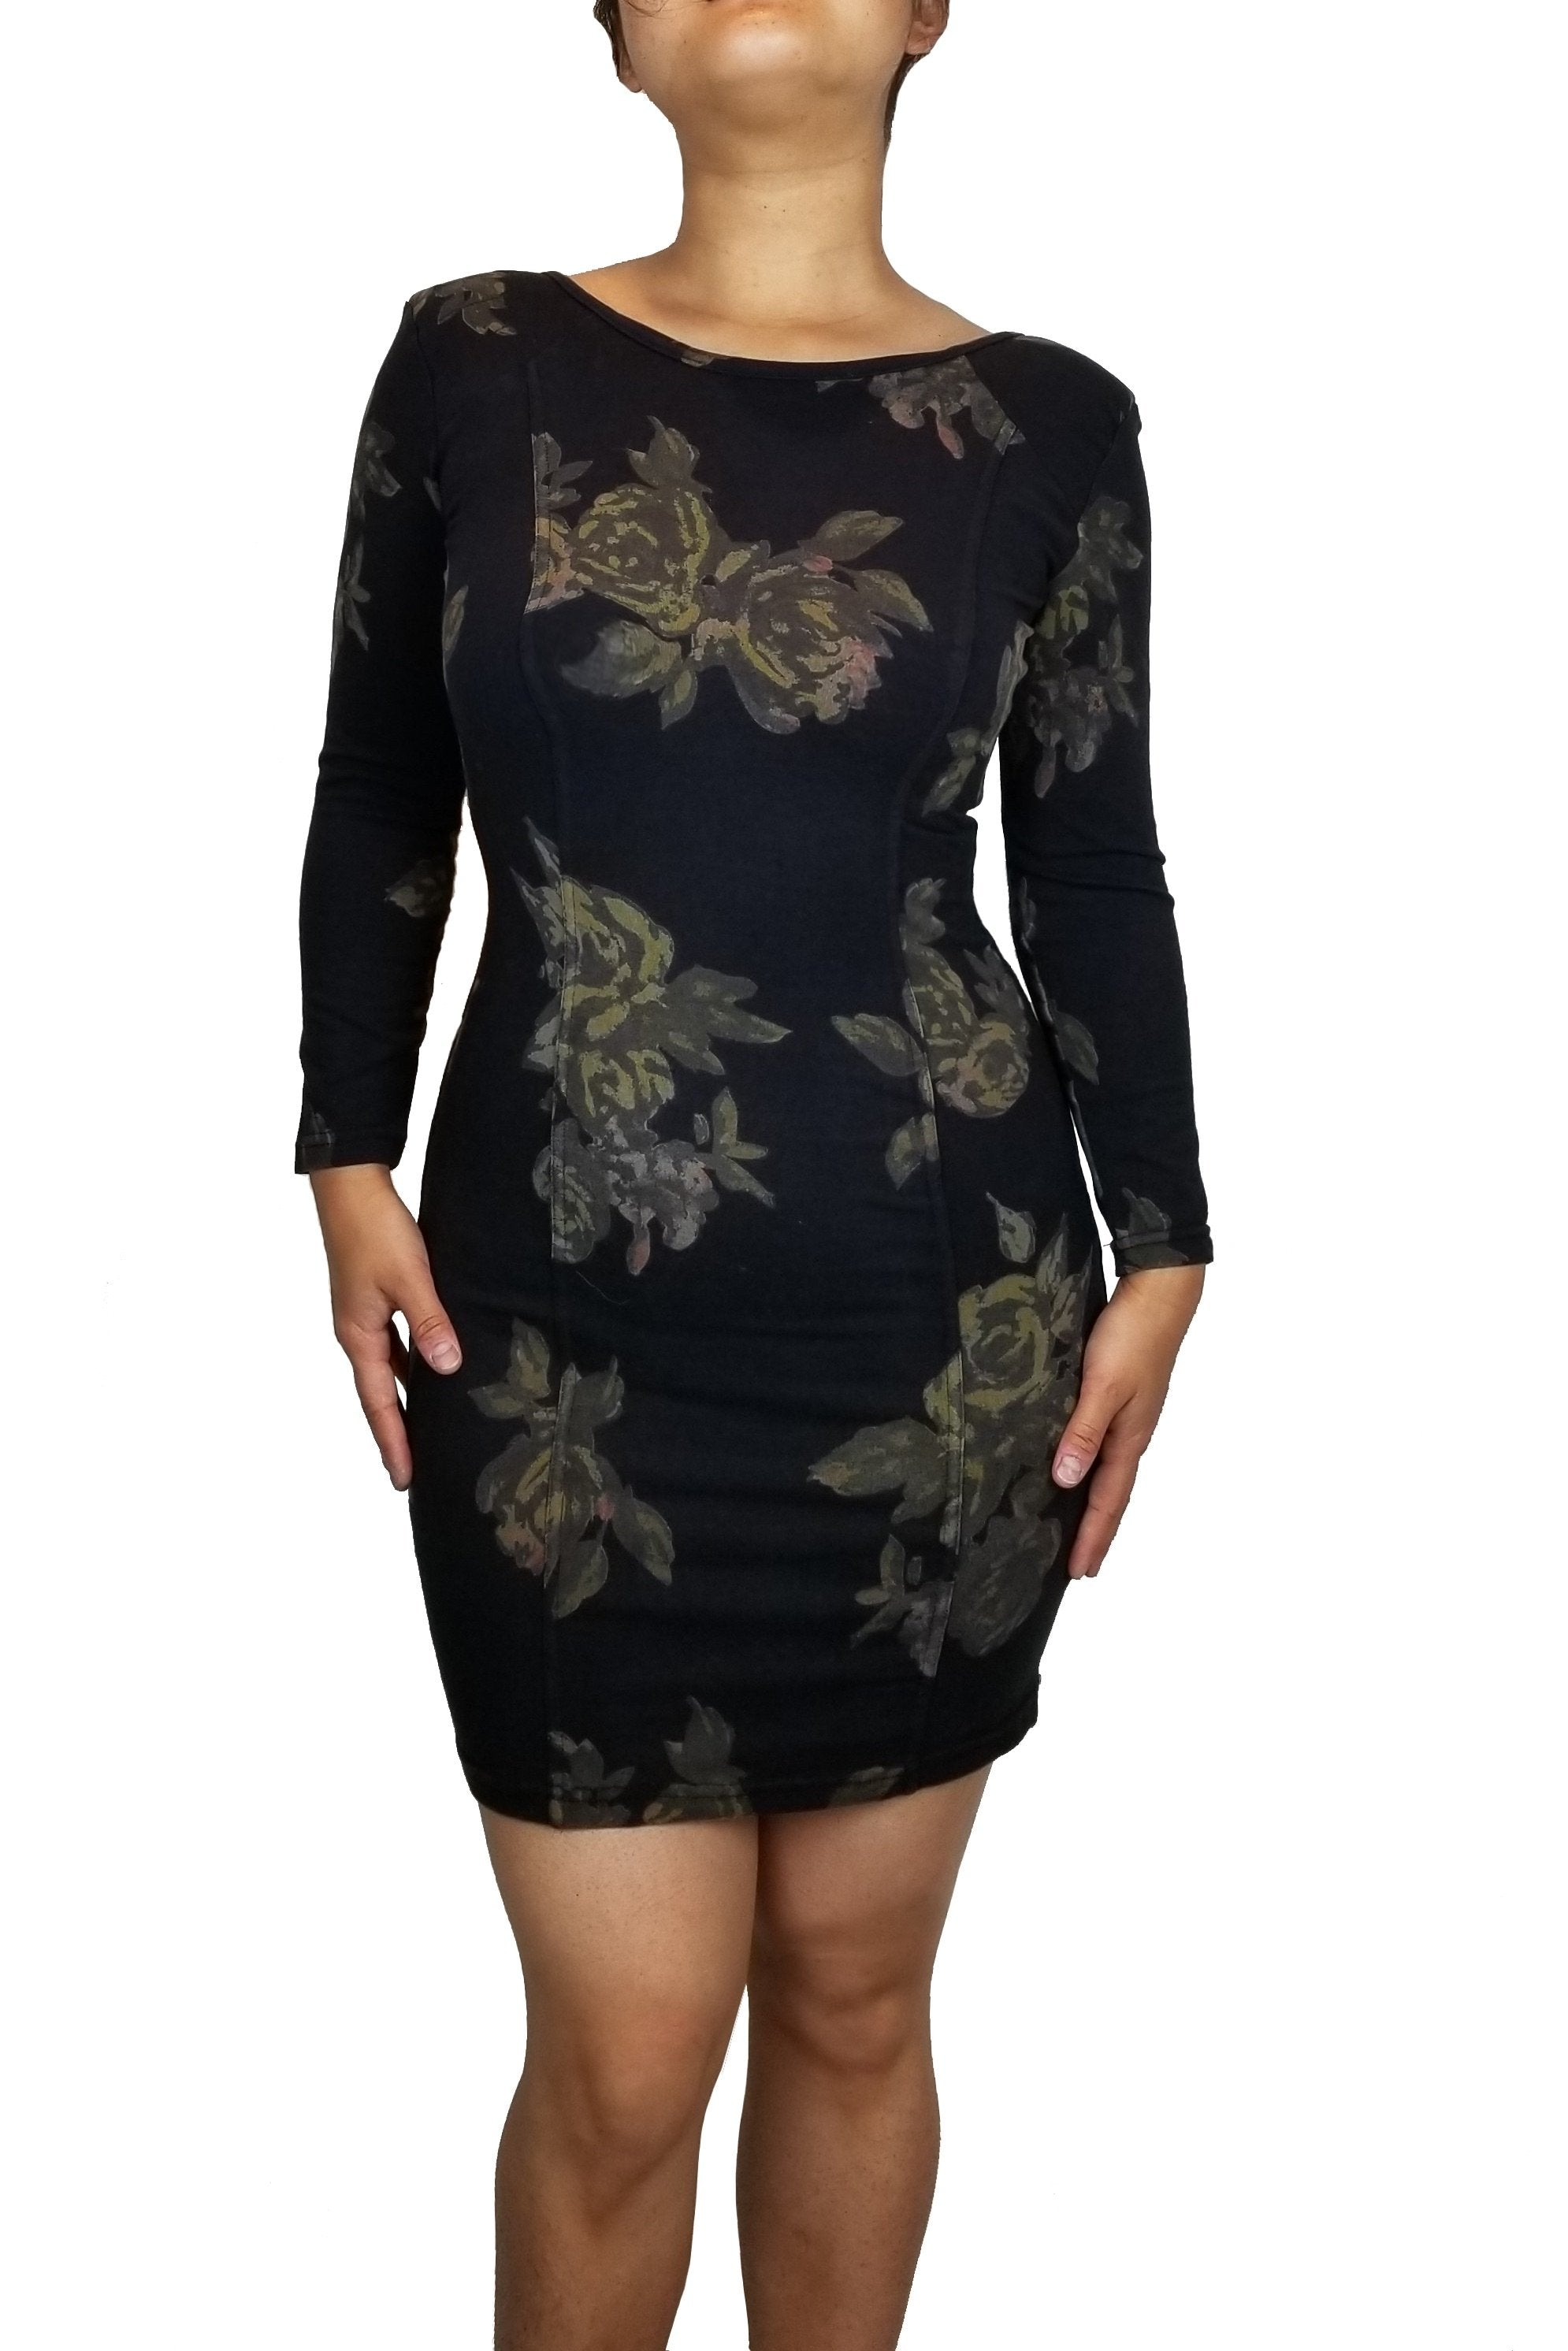 Wilfred Scoop Back Black floral dress, Body hugging dress with scoop back and a unique floral design, all for you to show the edges and curves!, Black, 92% Cotton 6% Spandex, Shoulder fill: 100% Polyester, women's Dresses & Rompers, women's Black Dresses & Rompers, Wilfred women's Dresses & Rompers, Dress, scoop back dress, soft dress, body hugging dress, tight bodycon stretch dress with long sleeves and floral prints, body stretch pencil dress with open back mini dress, sexy bodycon dress